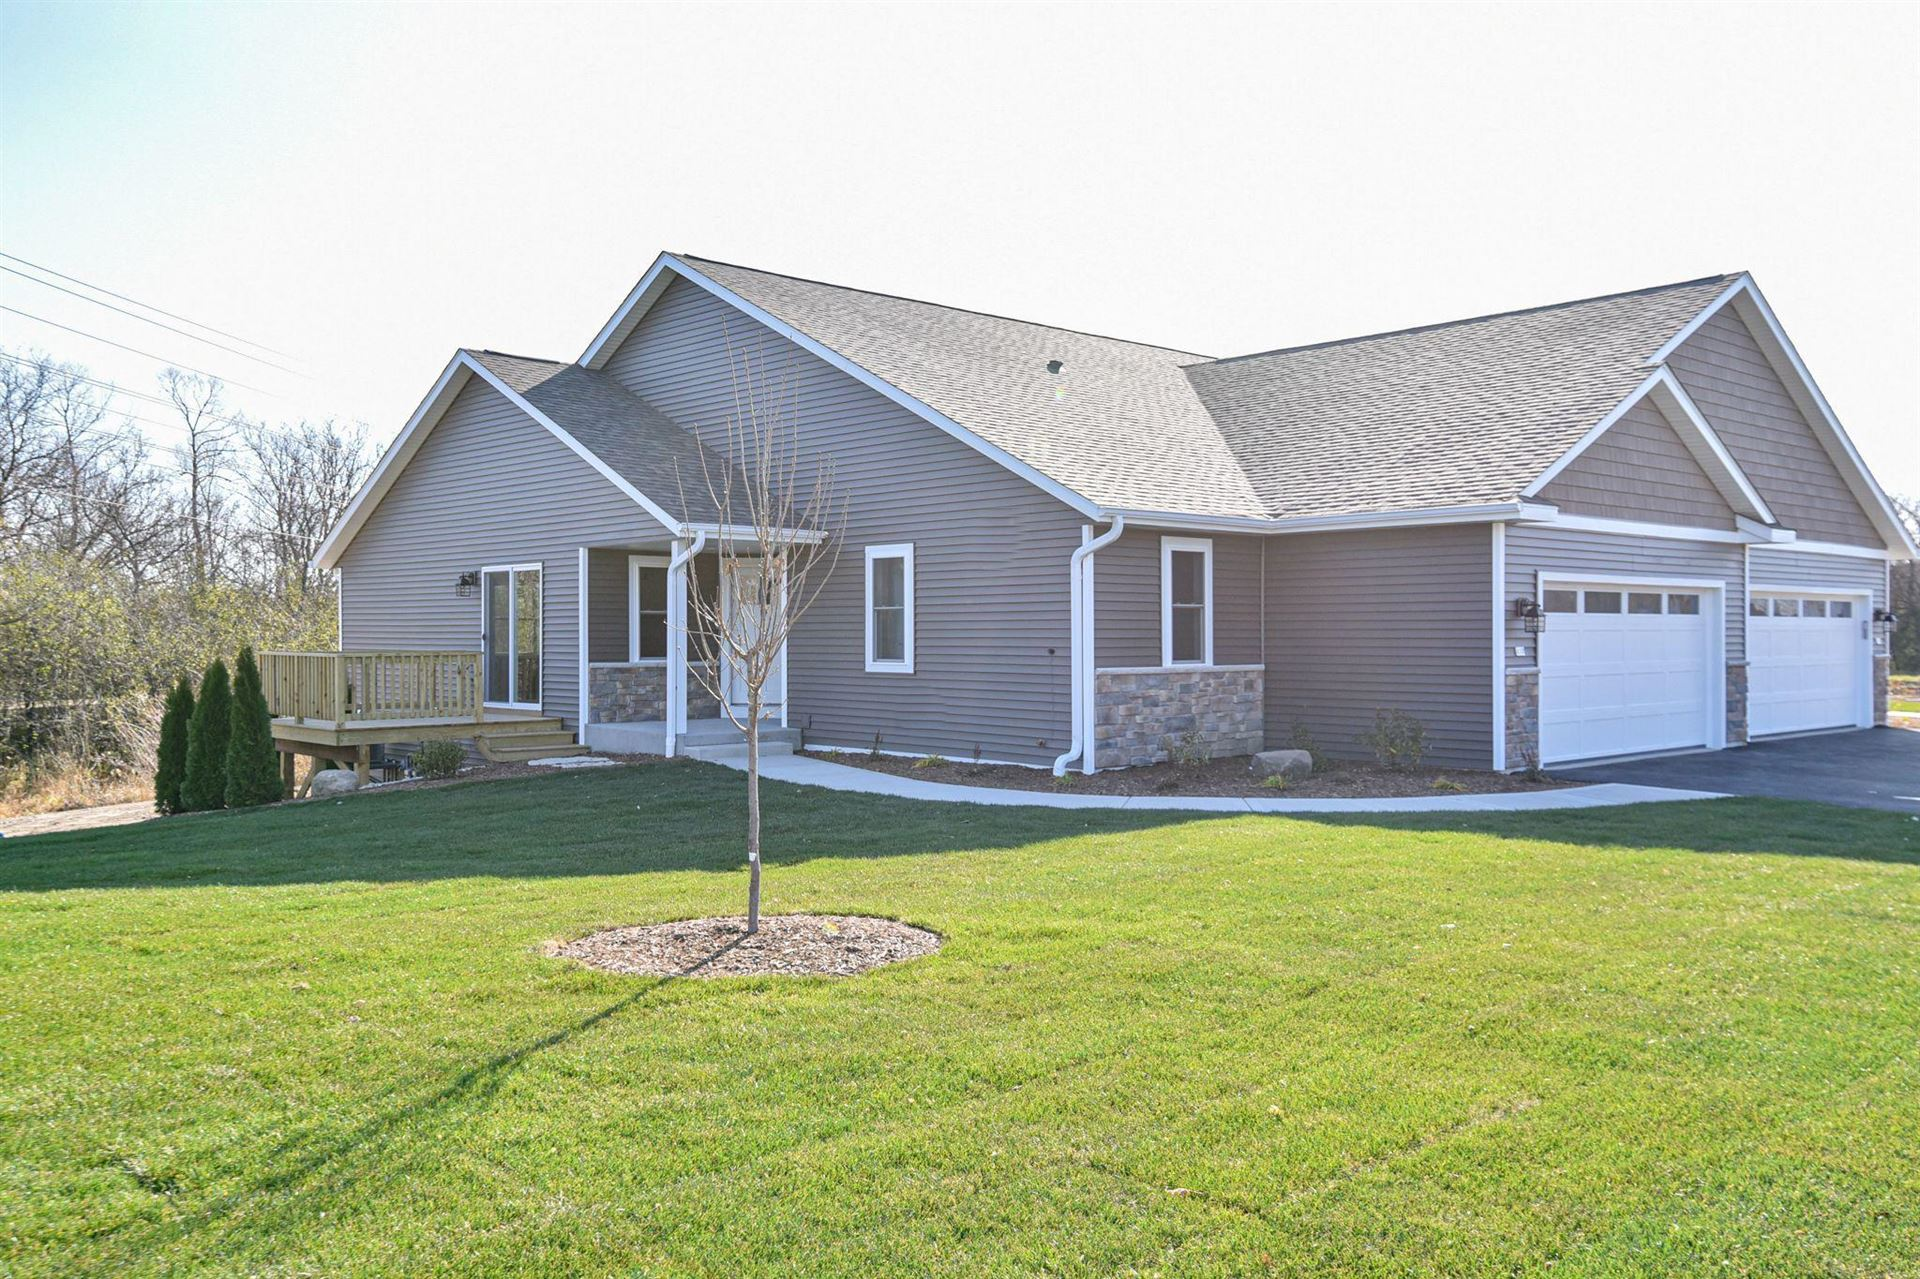 410 Trailview Crossing, Waterford, WI 53185 - #: 1690235